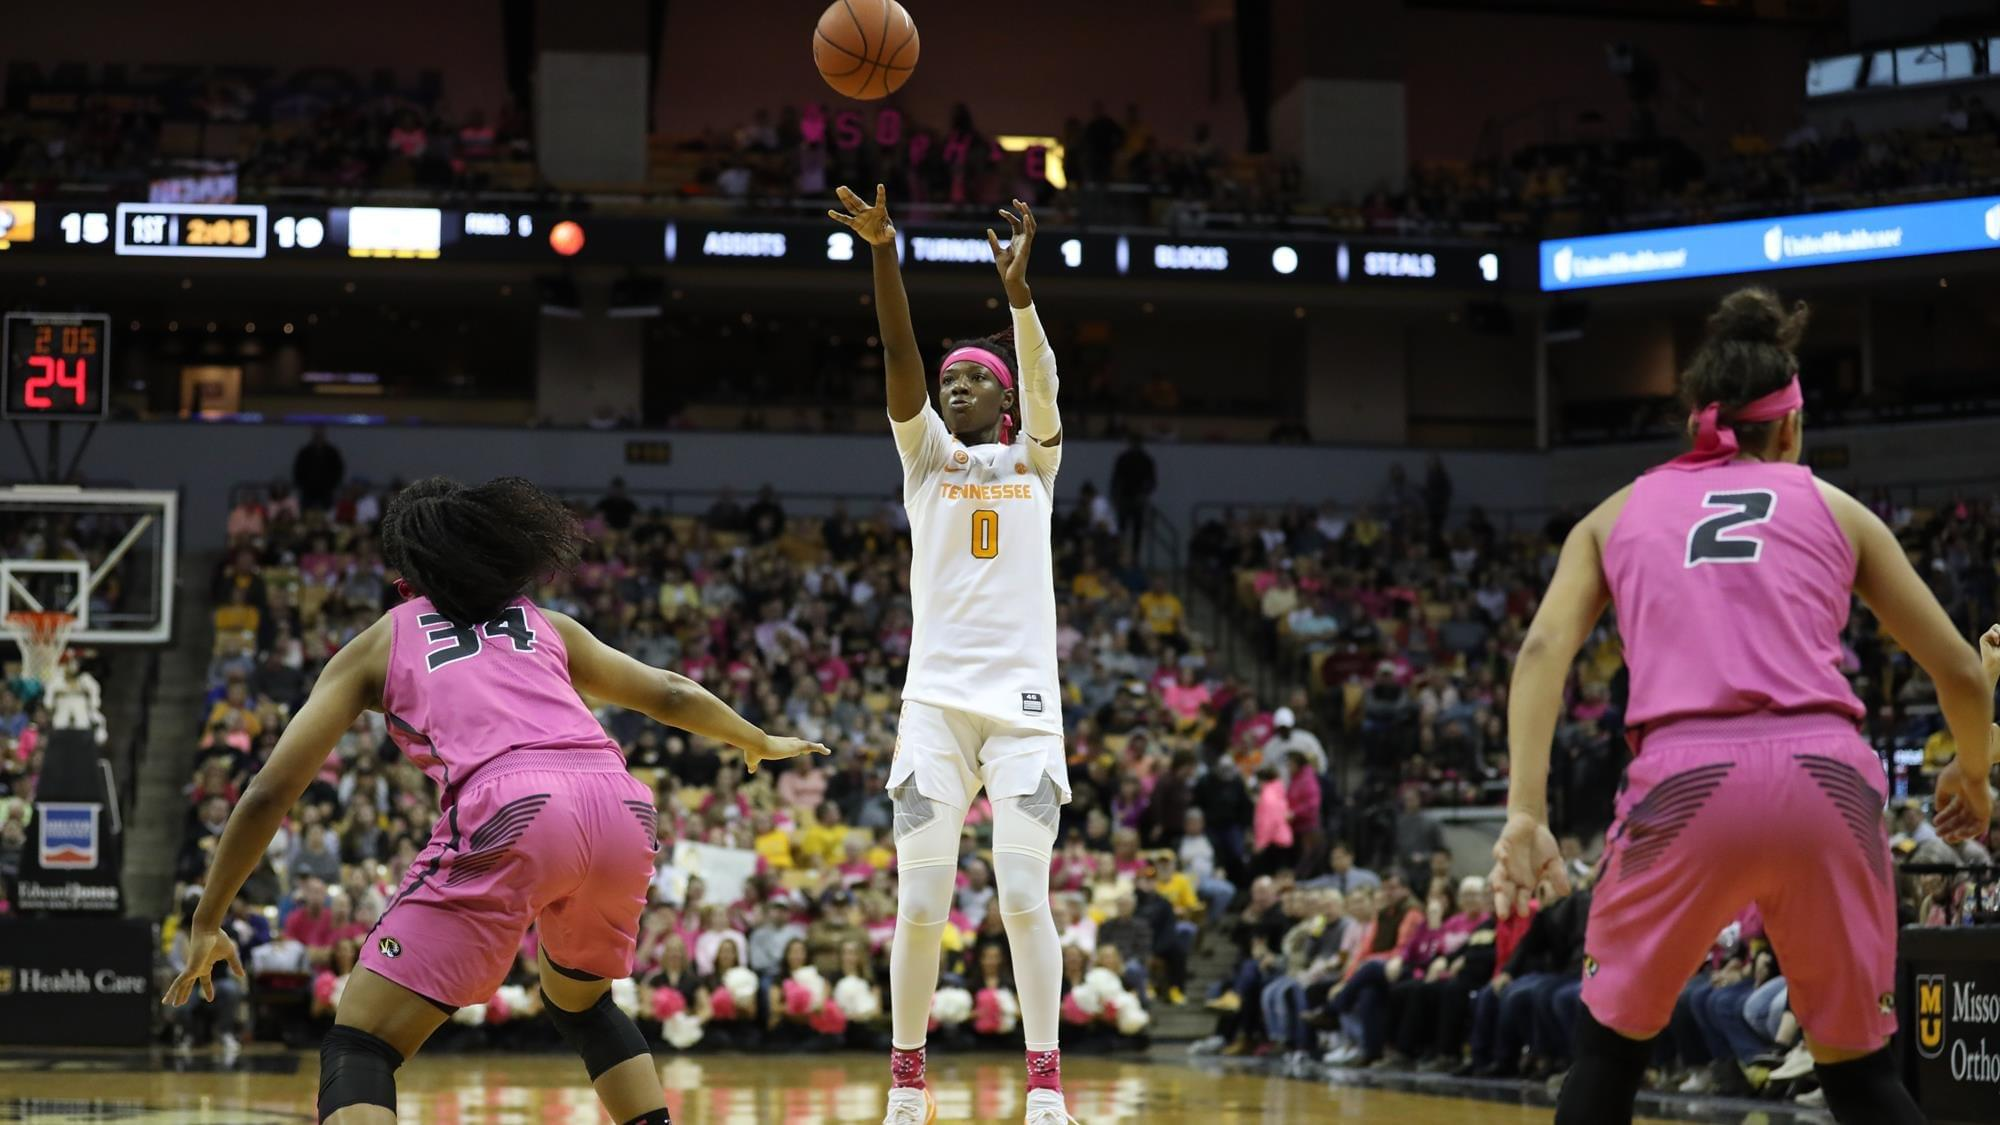 Lady Vols Earn Gritty Win Over Mizzou, 62-60